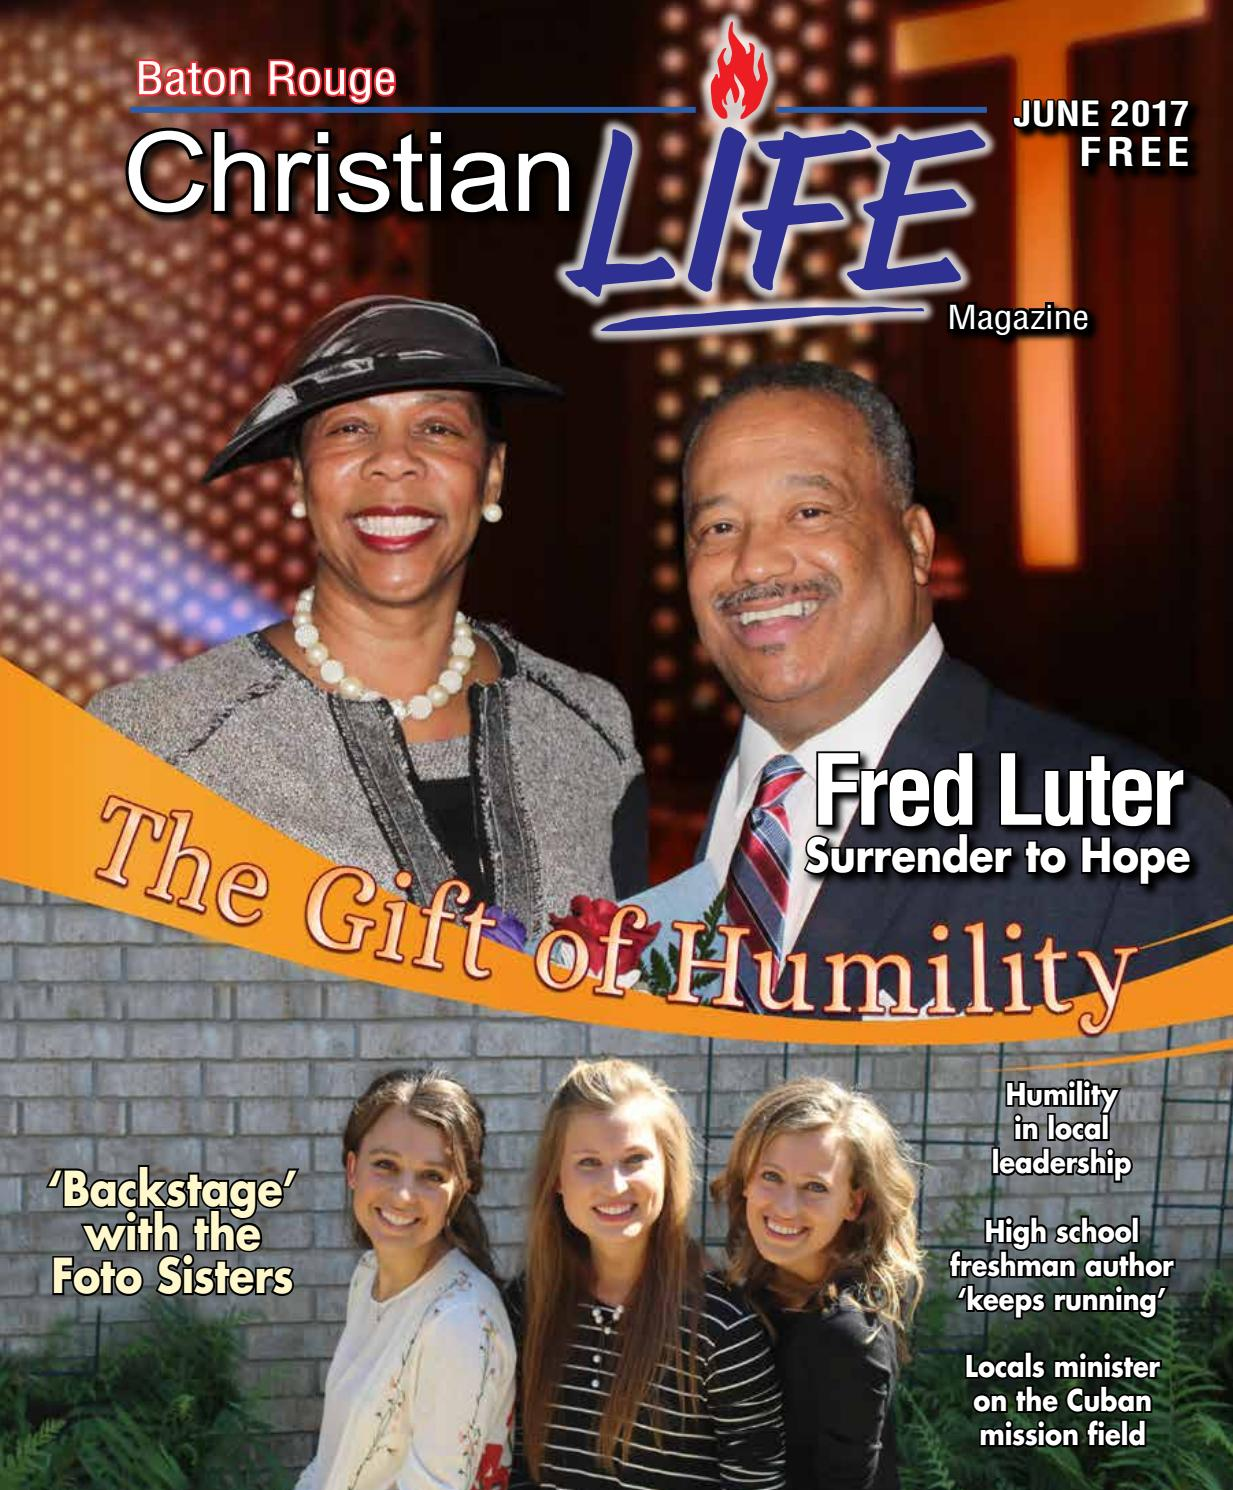 Baton rouge christian personals Singles, Ministries, Healing Place Church